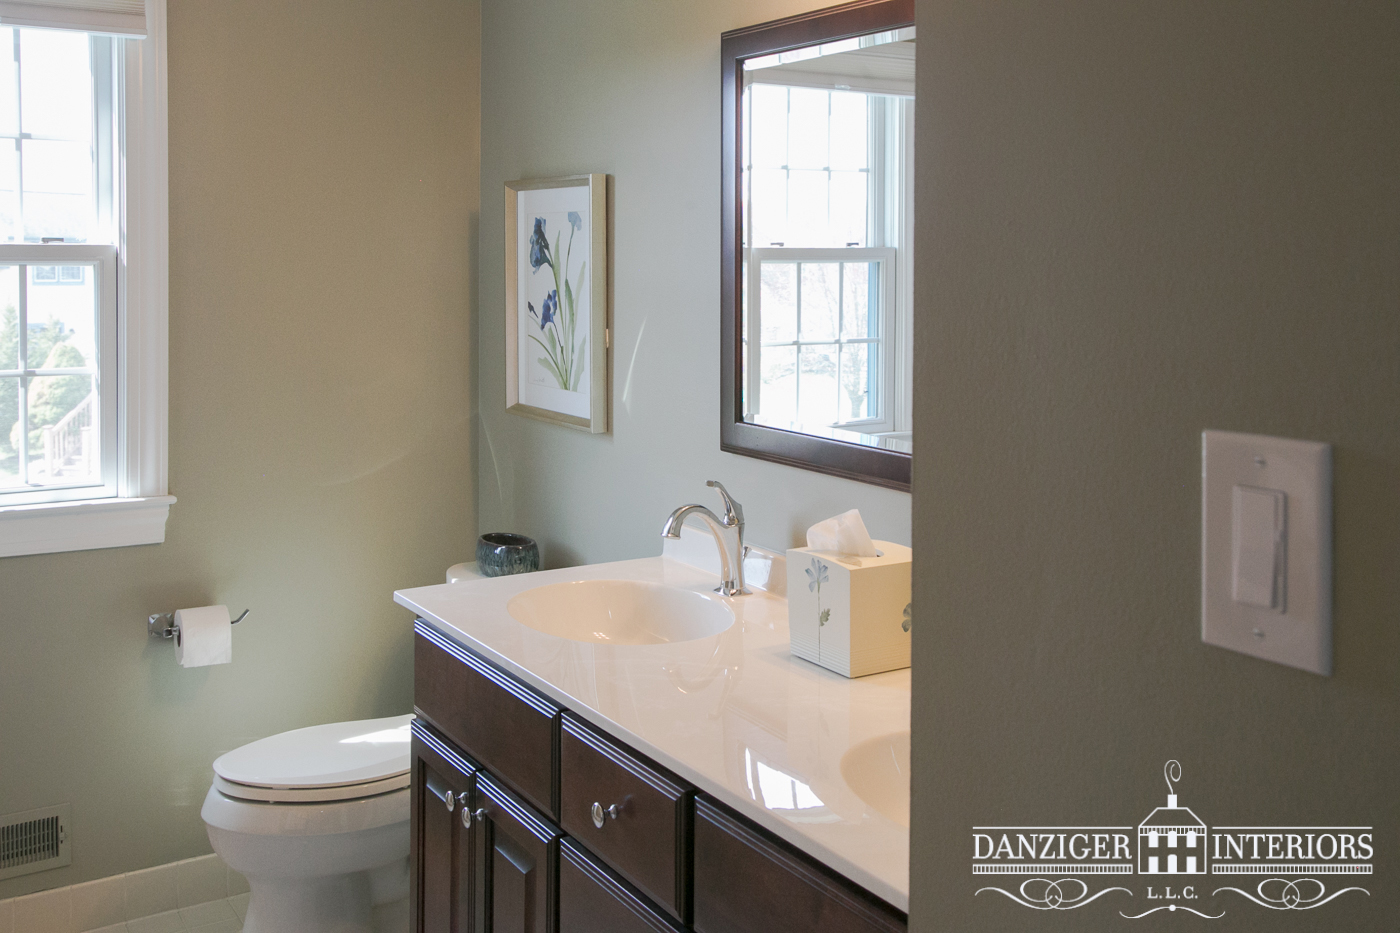 Additional Bathroom Projects